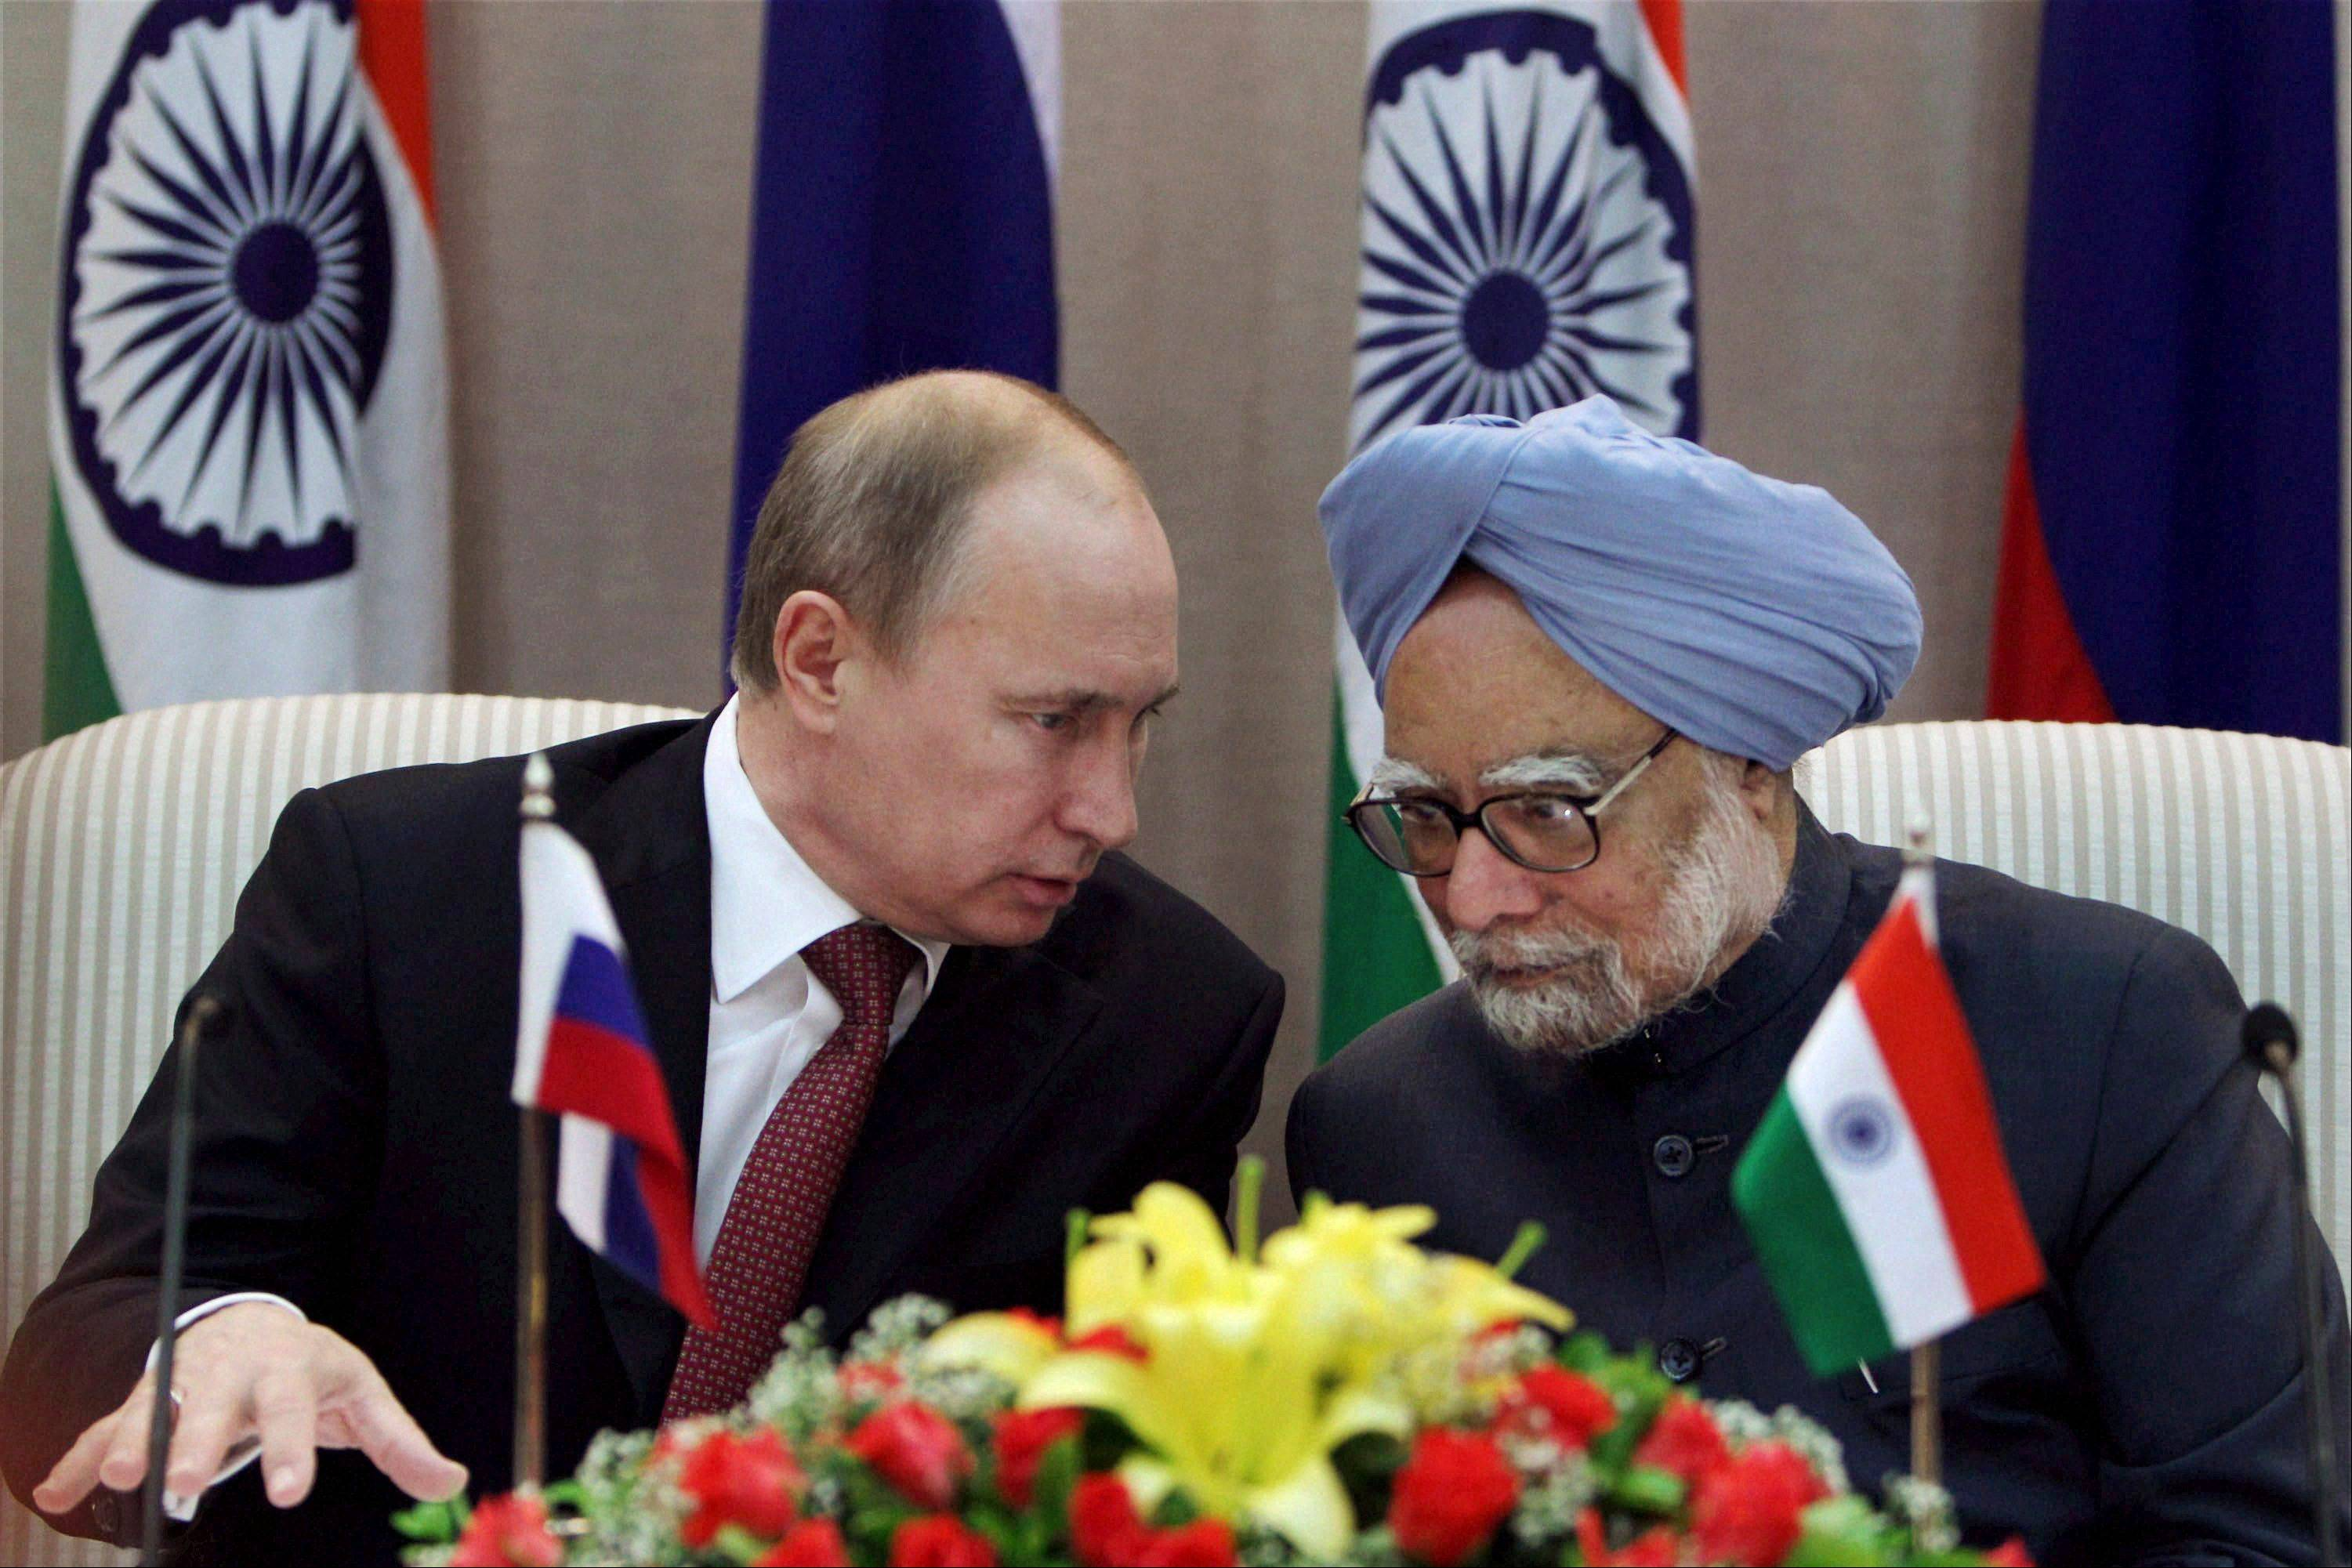 Russian President Vladimir Putin, left, talks to Indian Prime Minister Manmohan Singh at a joint press conference following their meeting in New Delhi, India, Monday, Dec. 24, 2012. Russia and India signed weapons deals worth billions of dollars Monday as President Vladimir Putin sought to further boost ties with an old ally.